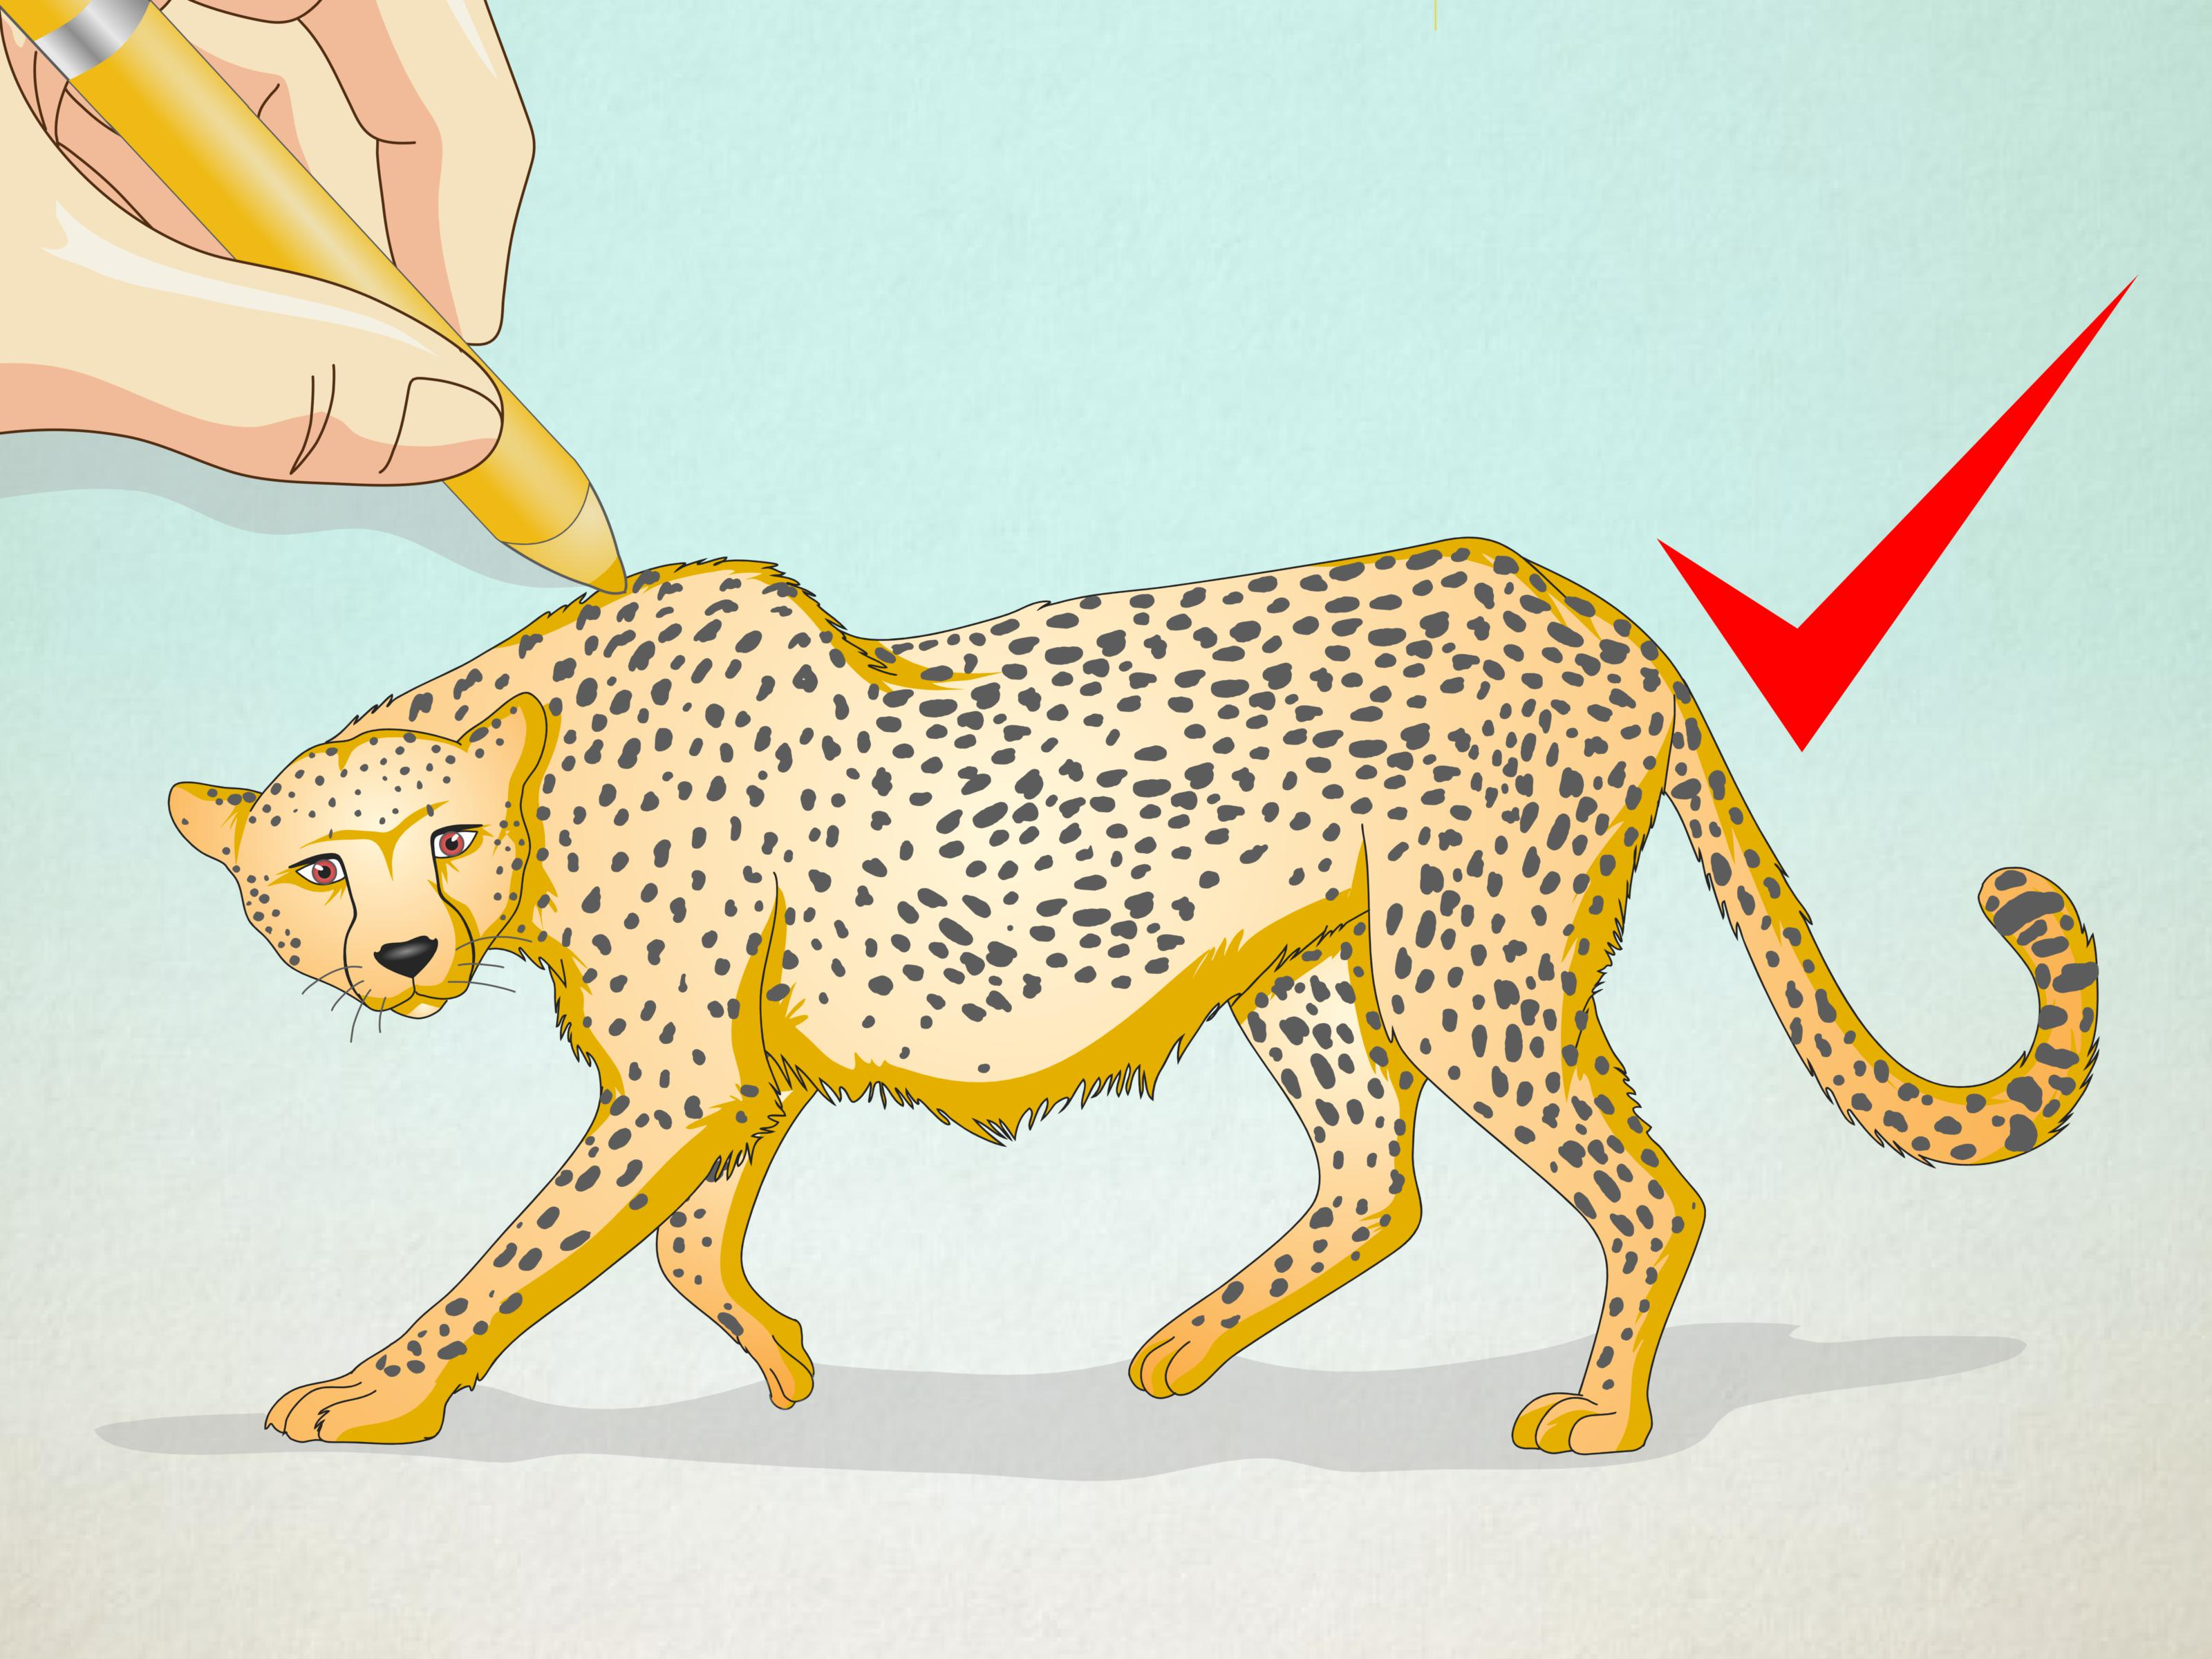 3200x2400 How To Draw A Cheetah 13 Steps (With Pictures)